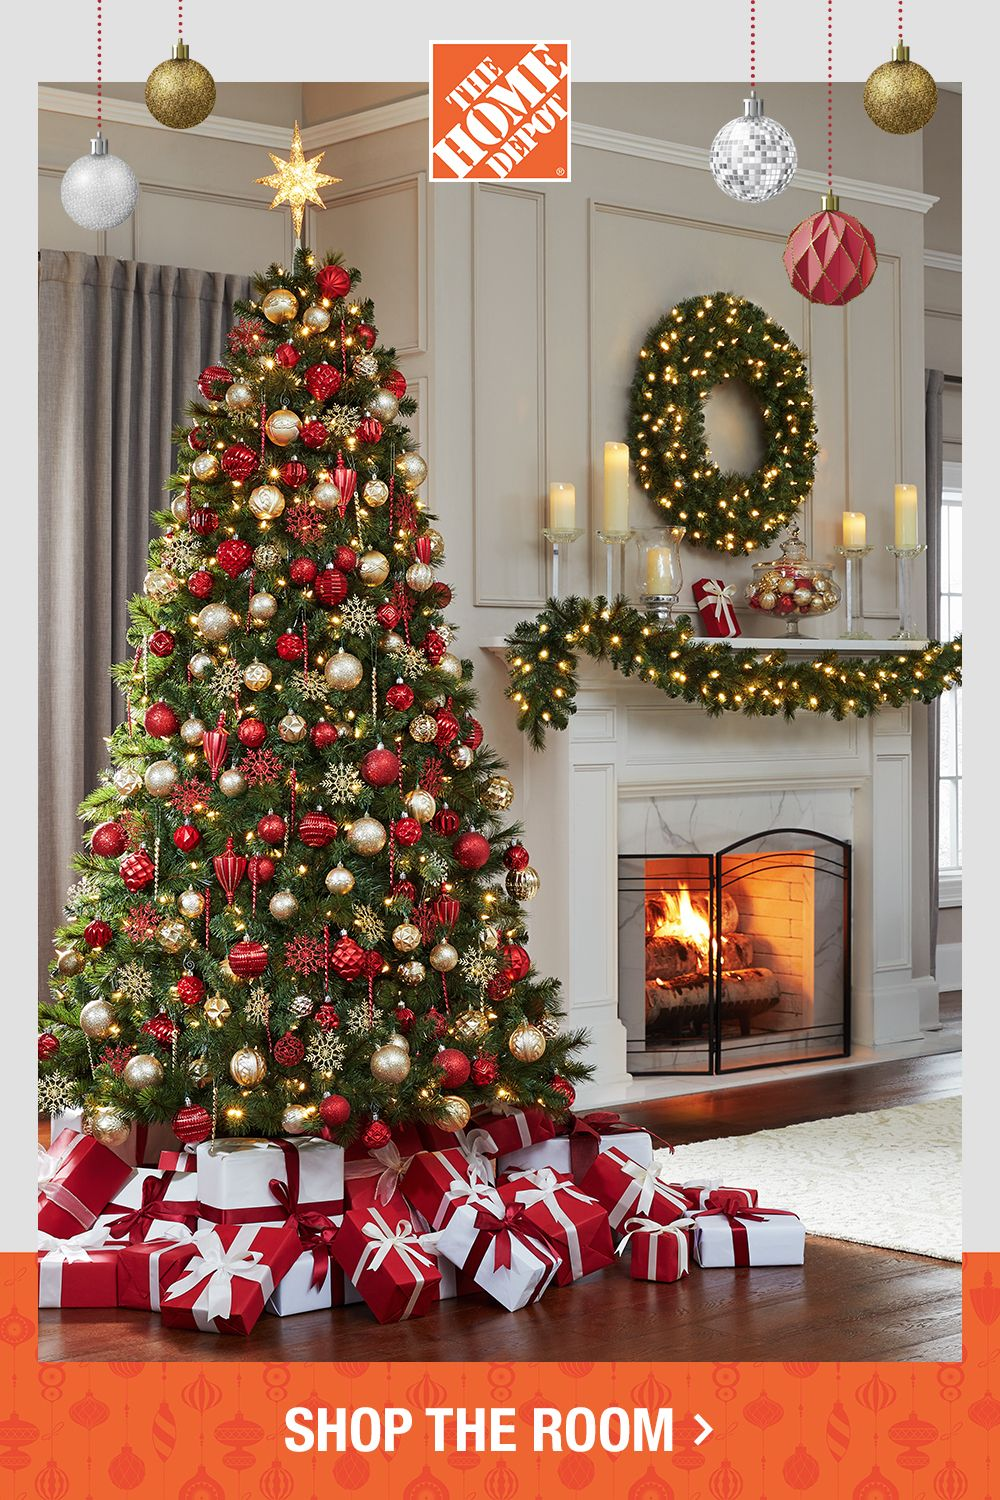 Let The Home Depot Bring More Joy To Your Holidays In 2020 Home Depot Christmas Decorations Indoor Holiday Decor Christmas Decorations For The Home